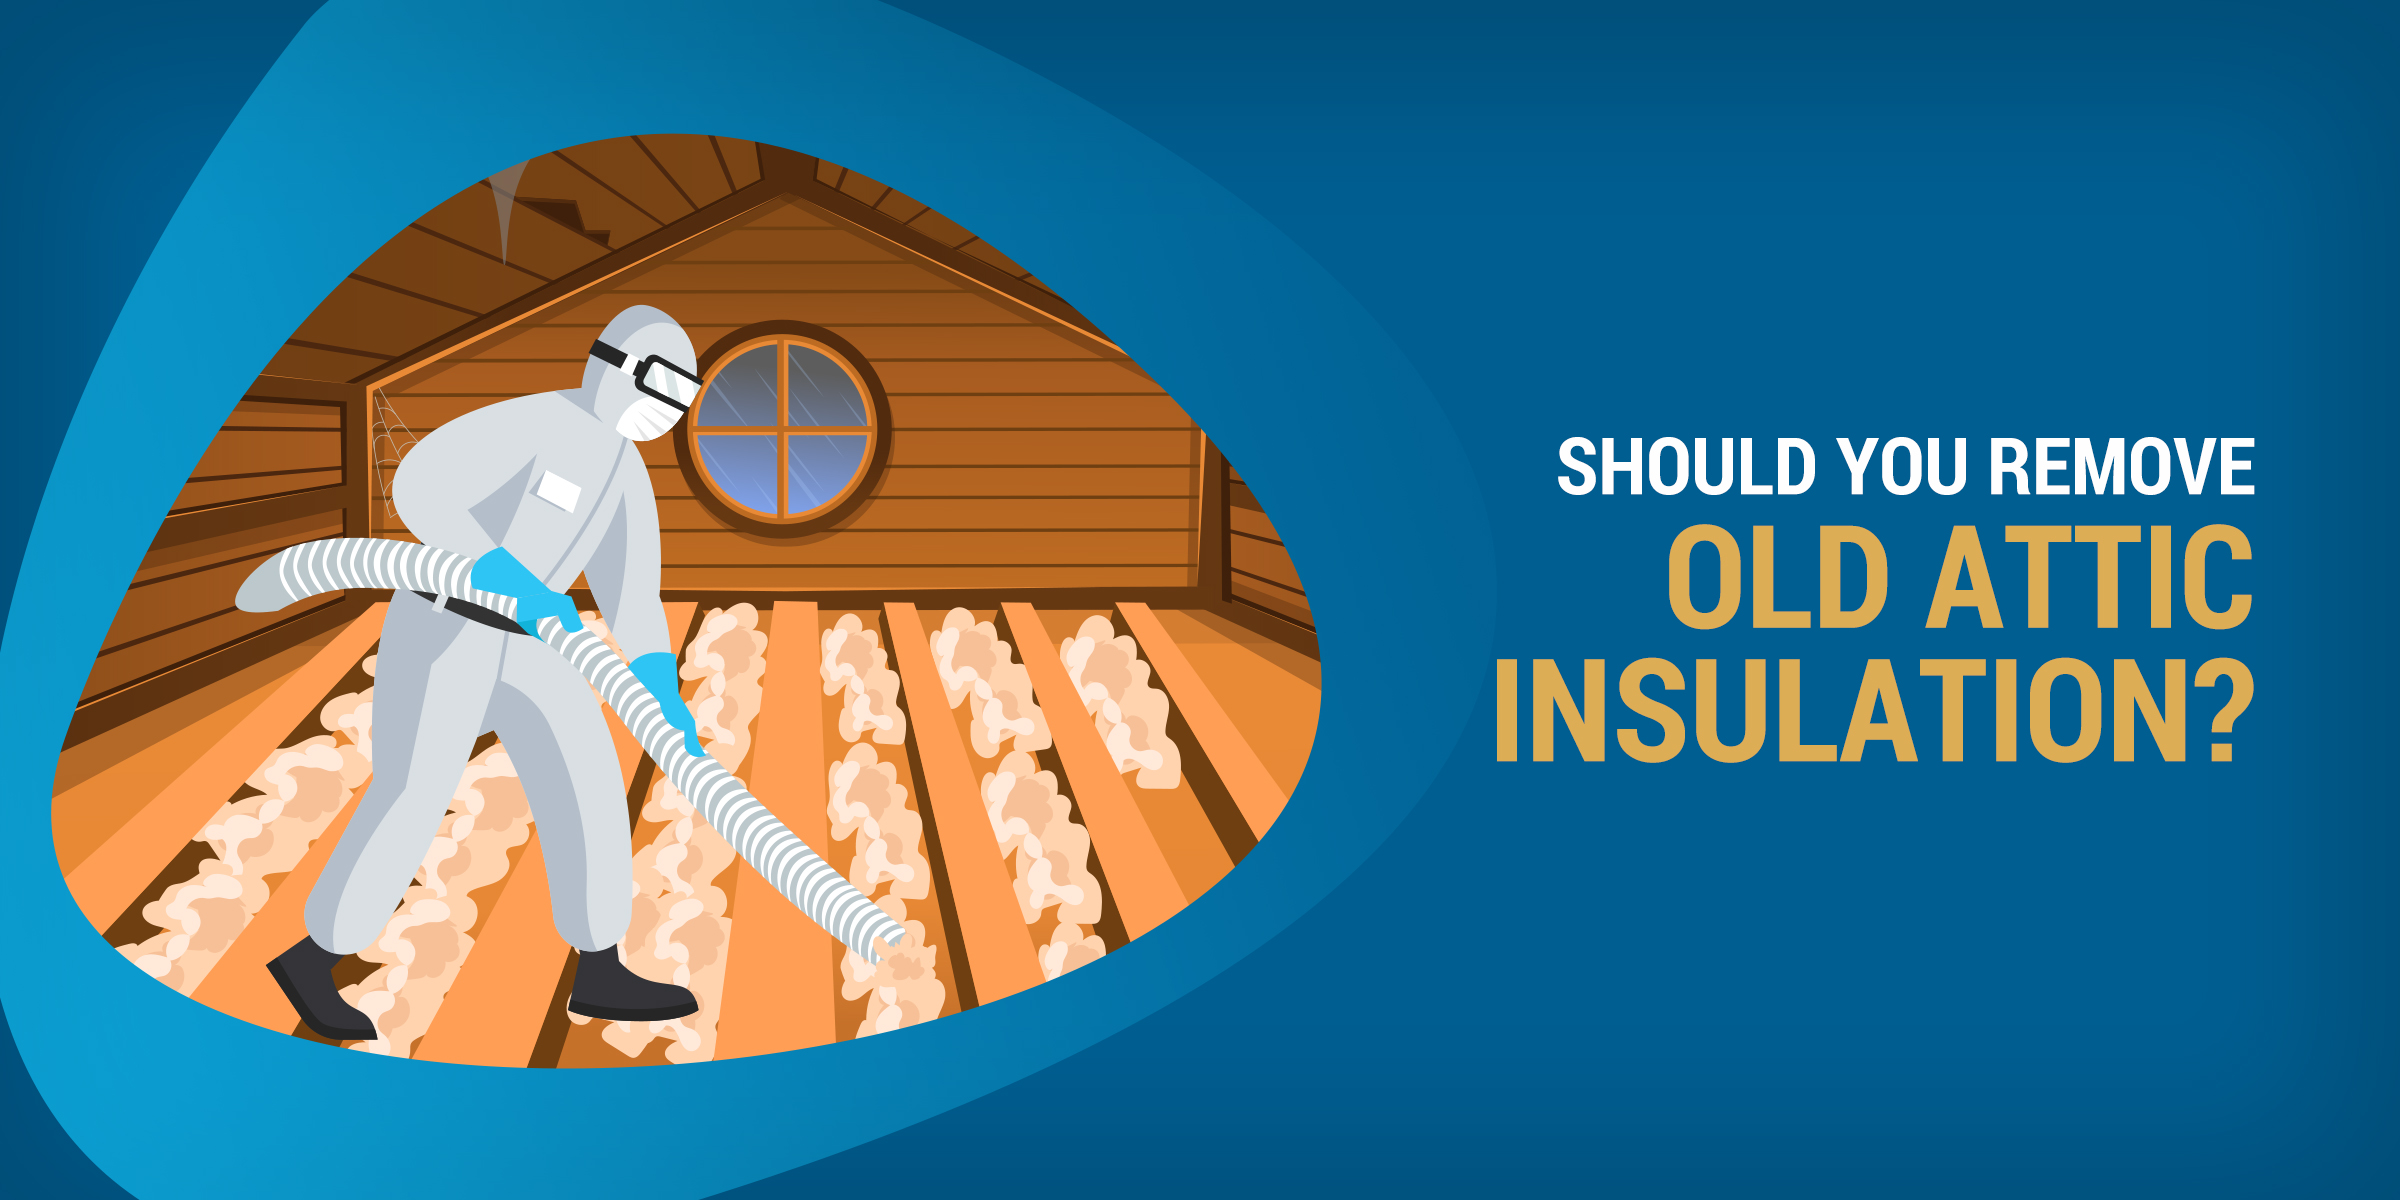 Should You Remove Old Attic Insulation?